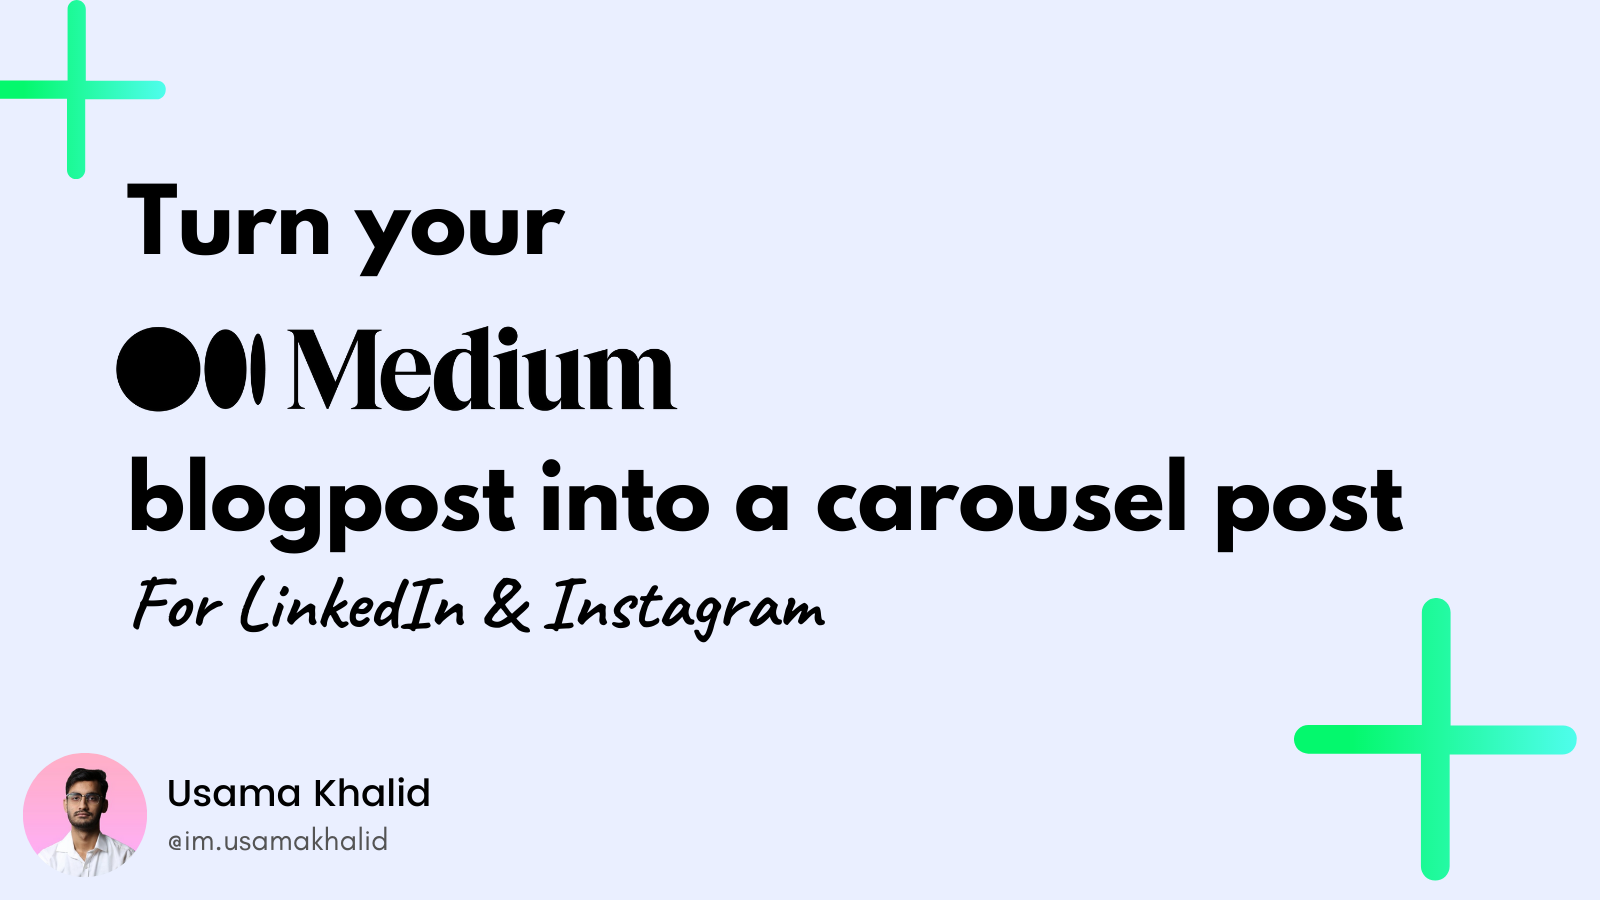 Turn your Medium Post into a carousel post for LinkedIn & IG.